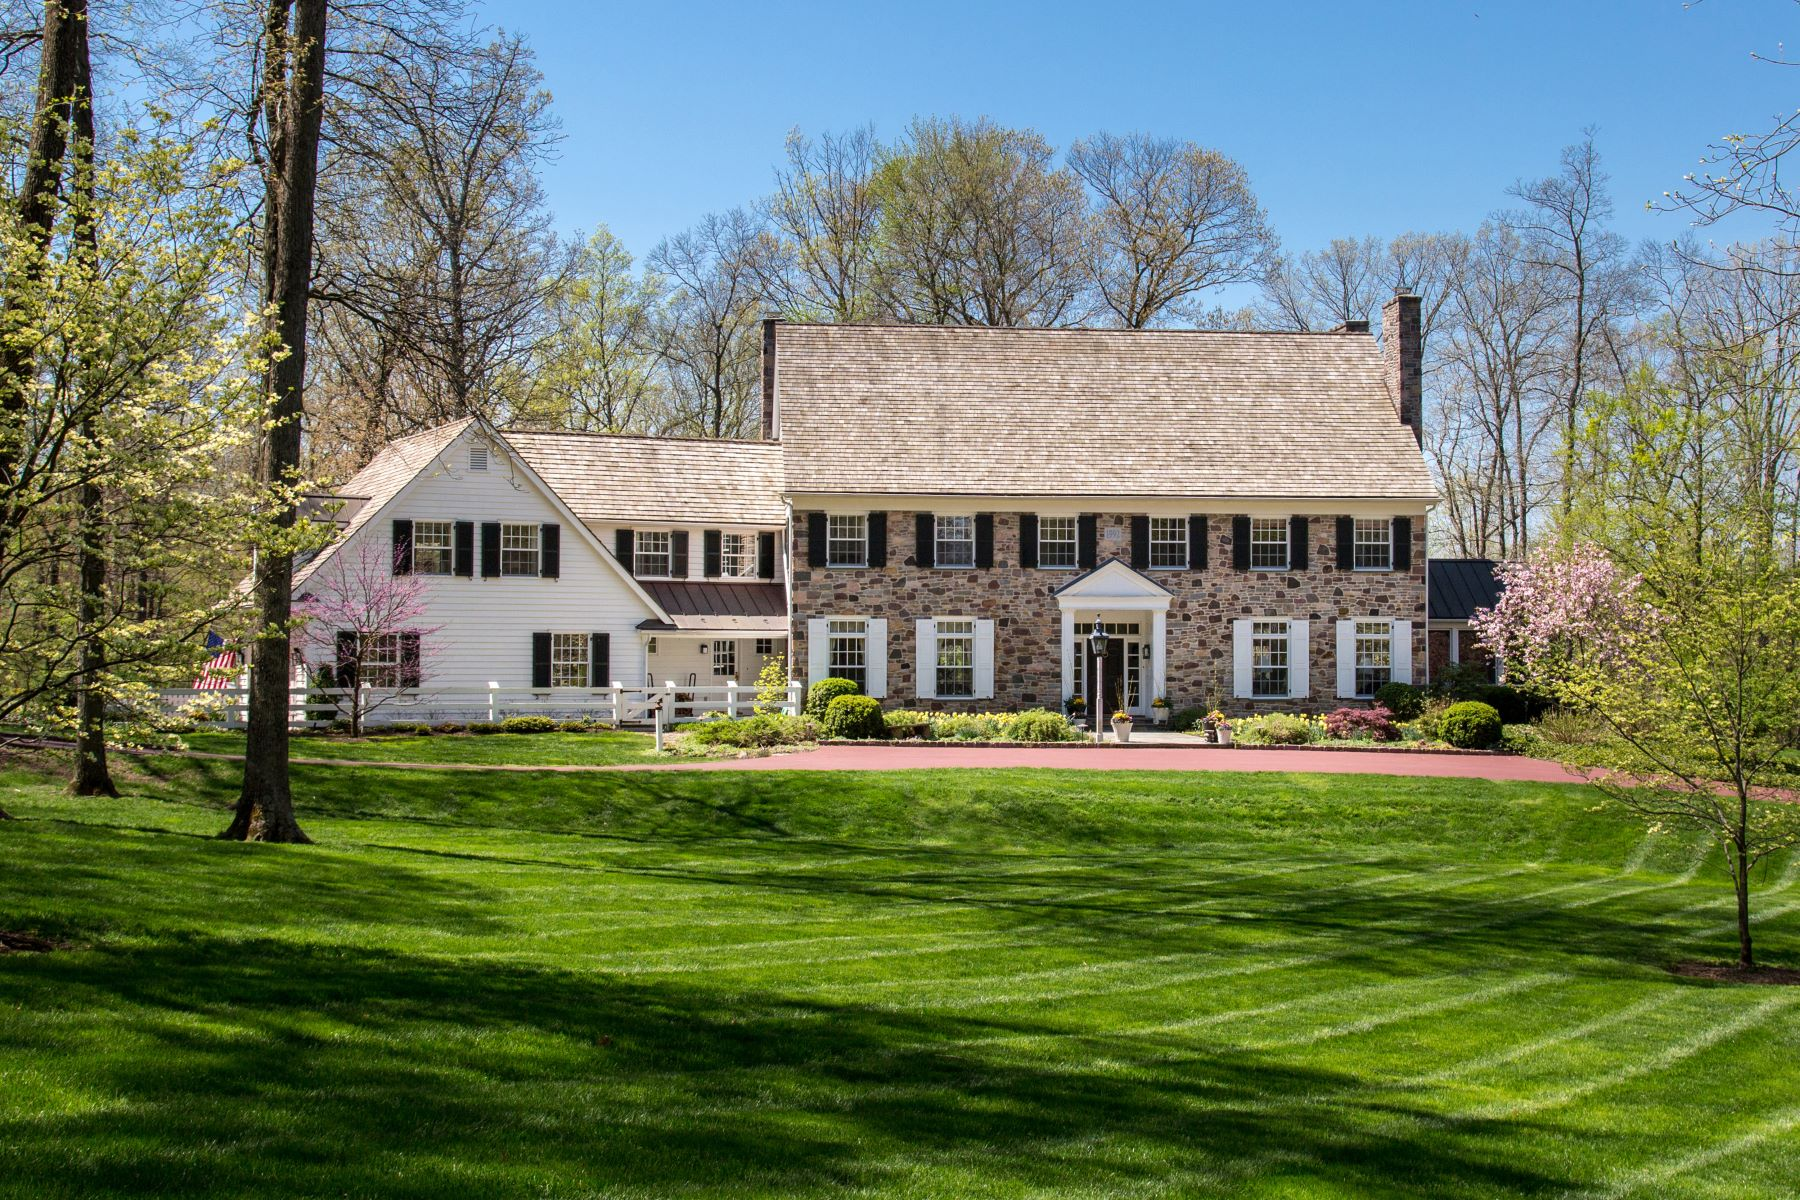 Single Family Home for Sale at 8 Round Hill Rd Newtown, Pennsylvania 18940 United States